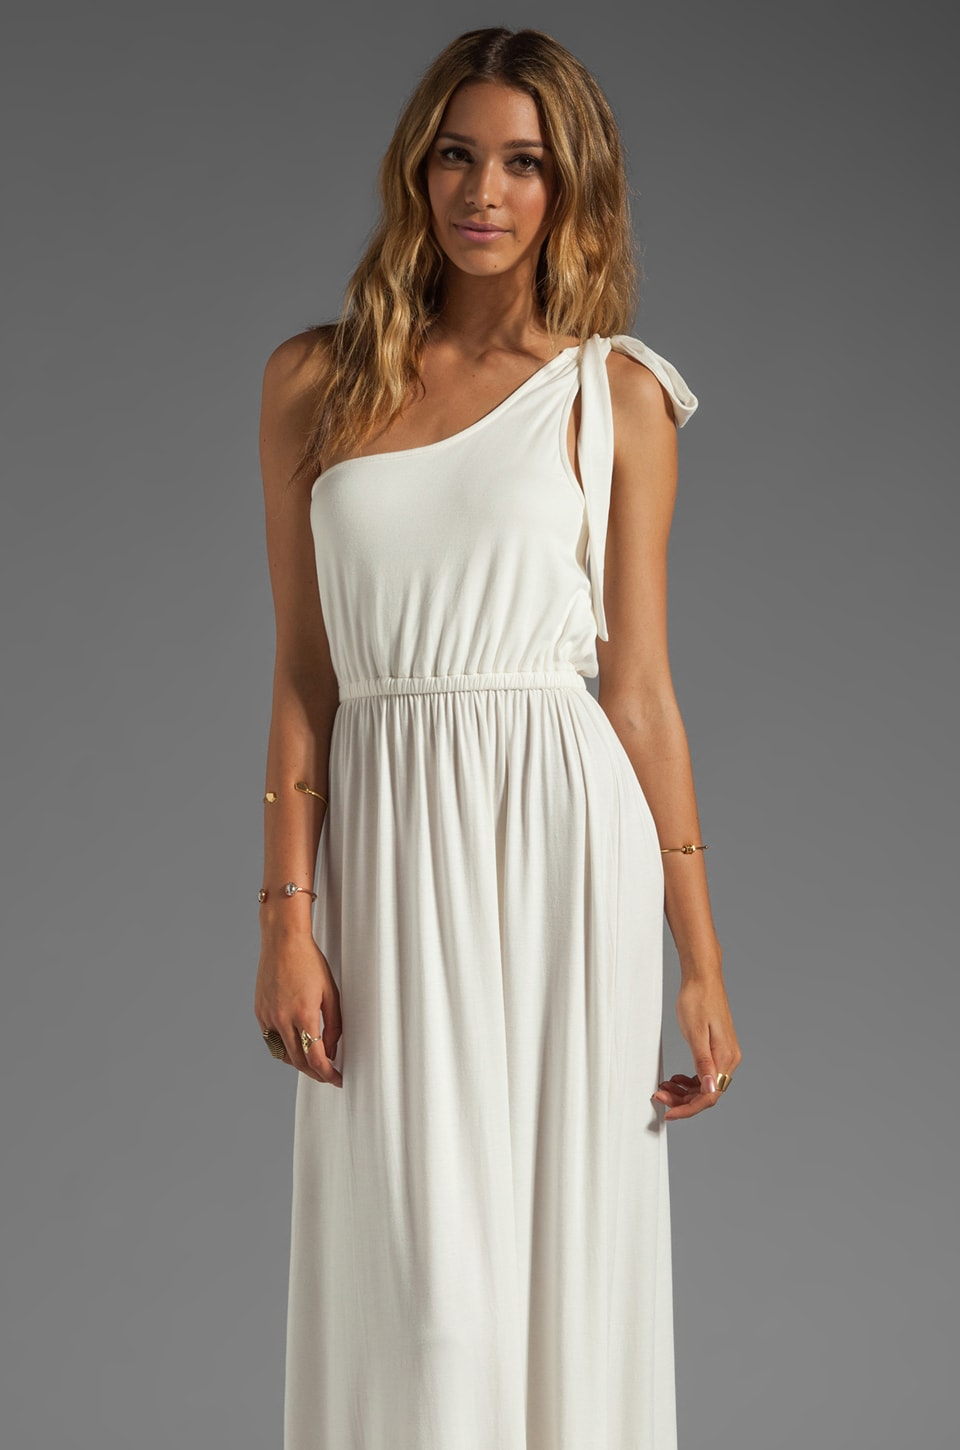 Rachel Pally Felix One Shoulder Dress in White